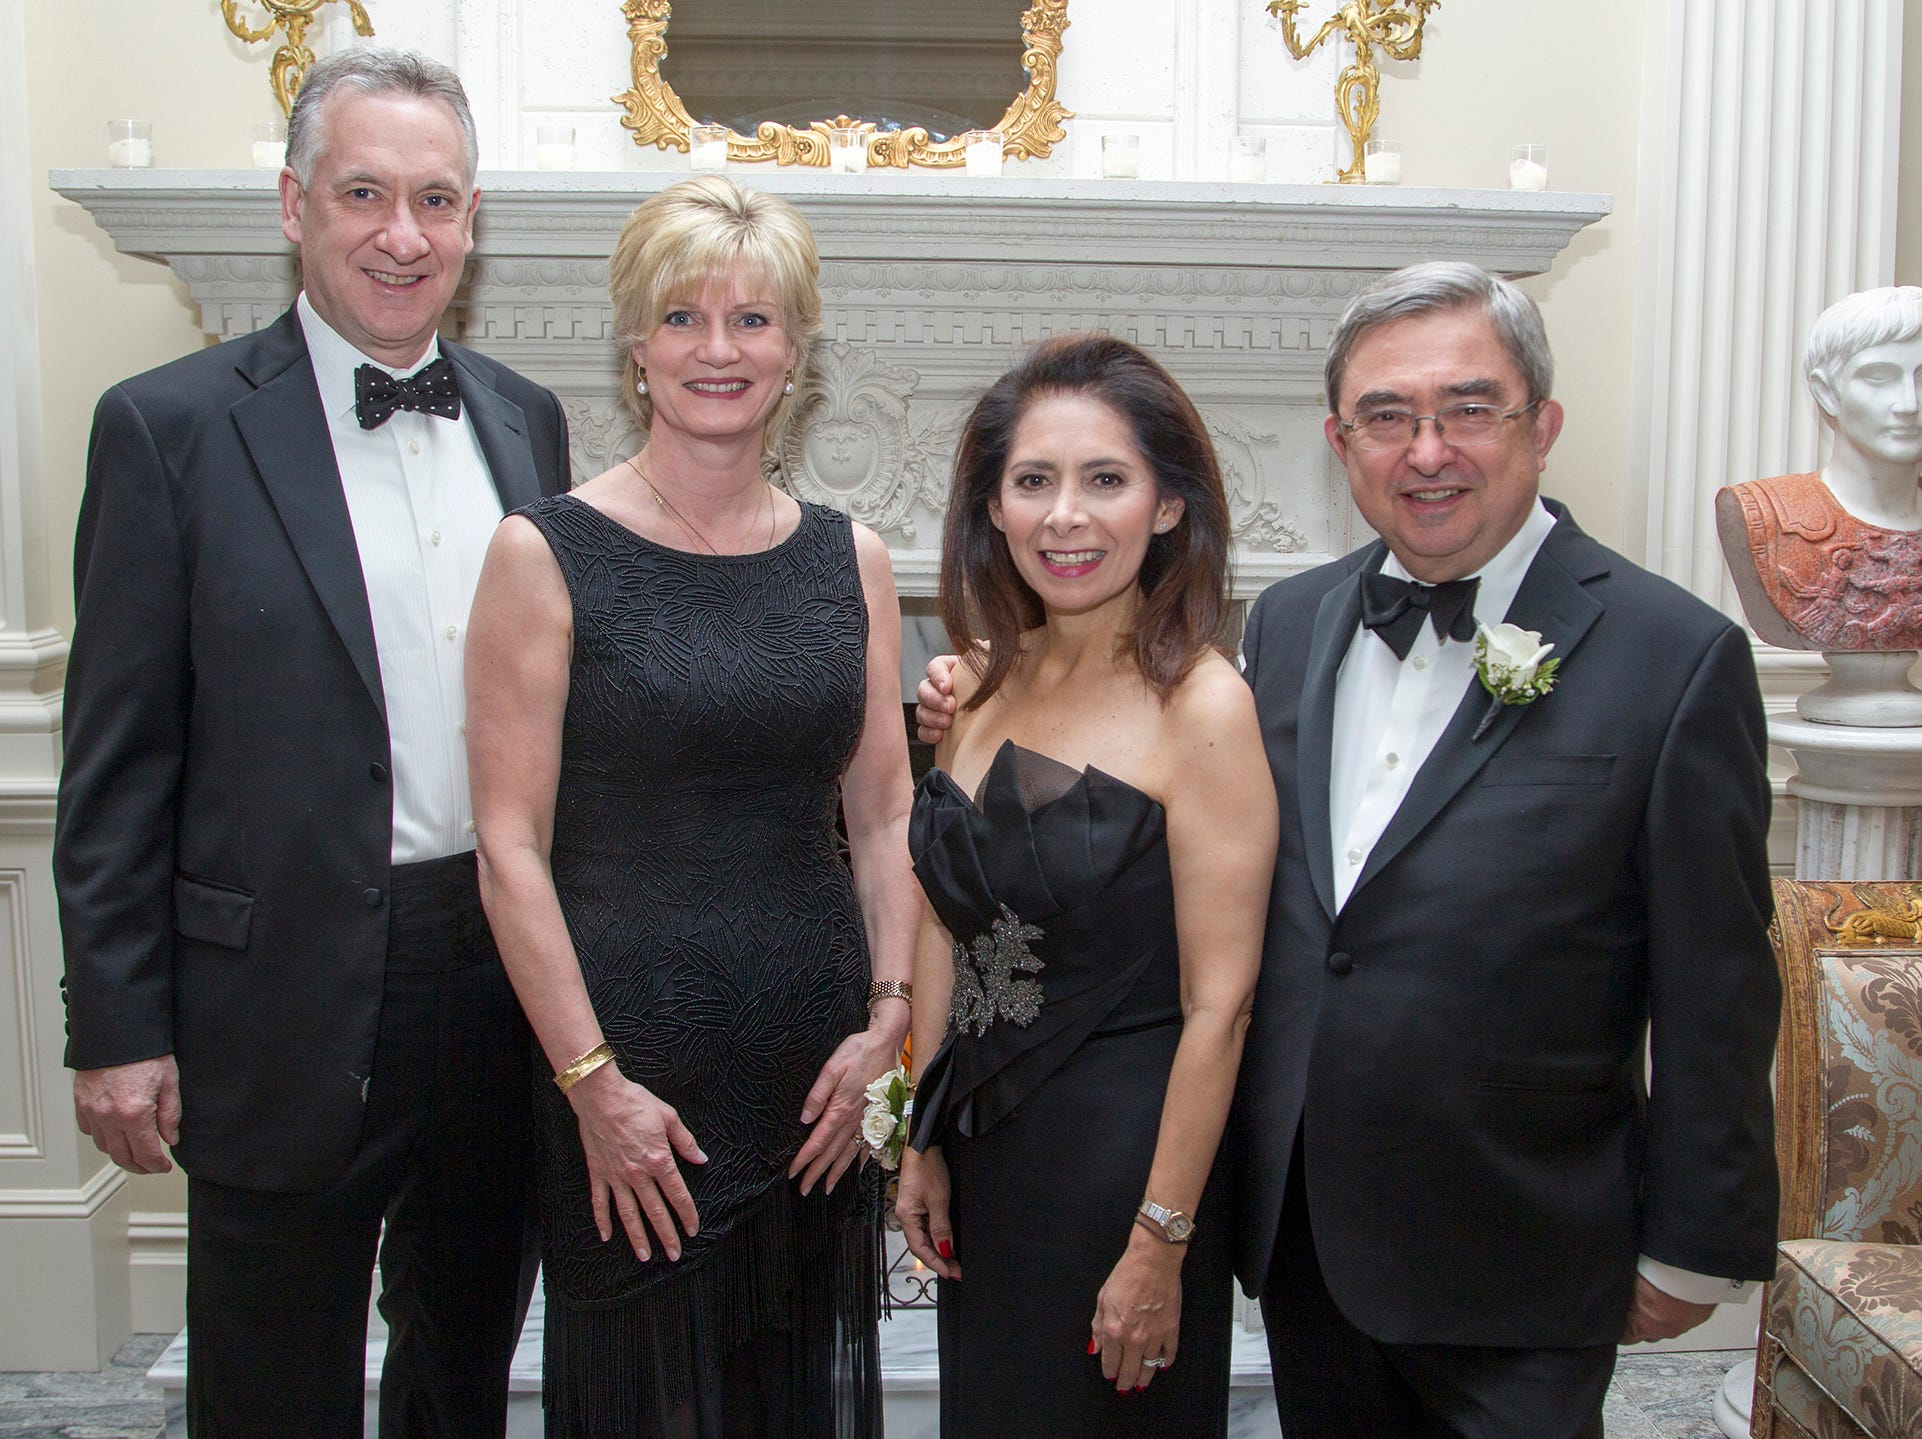 Brian and Diane Flynn, Dr. Jacqueline Ehlert-Mercer, Dr.Peter Mercer. Ramapo College held its 37th Annual Distinguished Citizens Dinner at Rockleigh Country Club. 03/02/2019